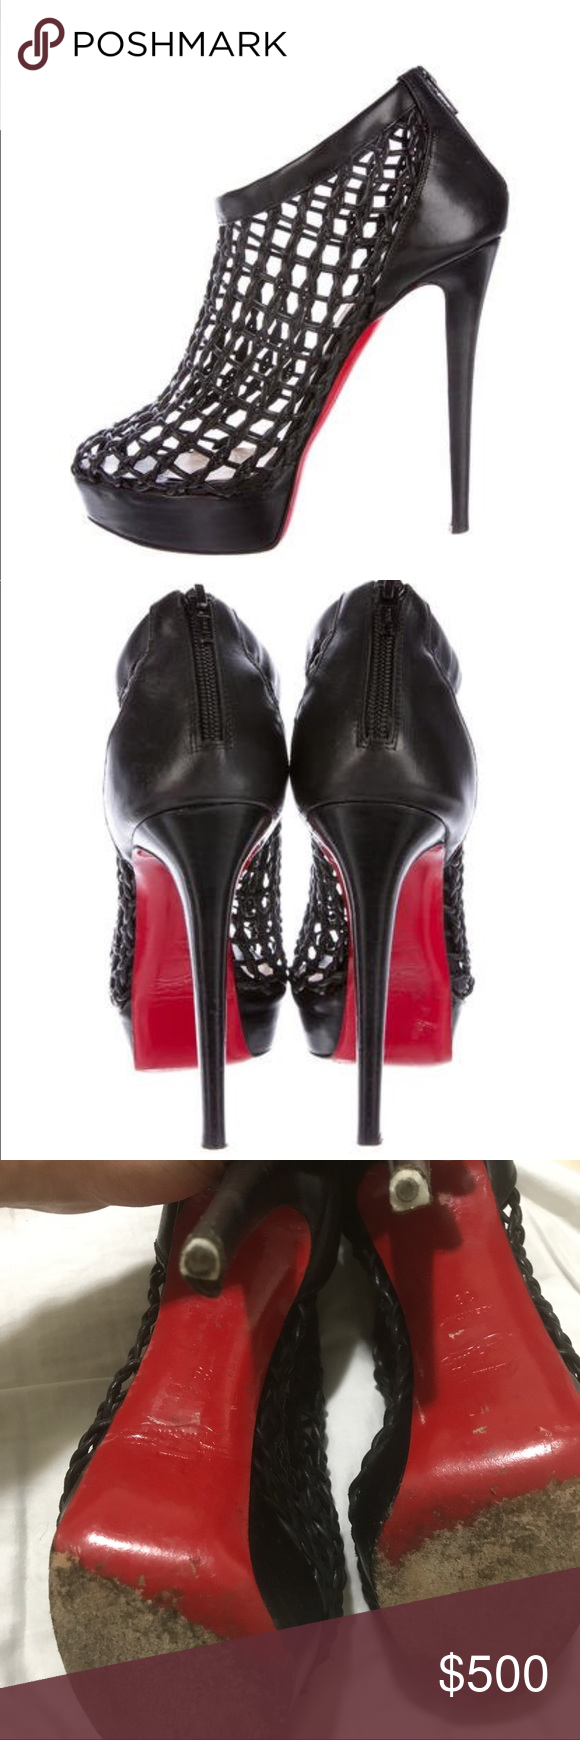 6e720f26eb18 CHRISTIAN LOUBOUTIN - Coussin Caged Booties Black leather genuine Christian  Louboutin Coussin round toe booties with